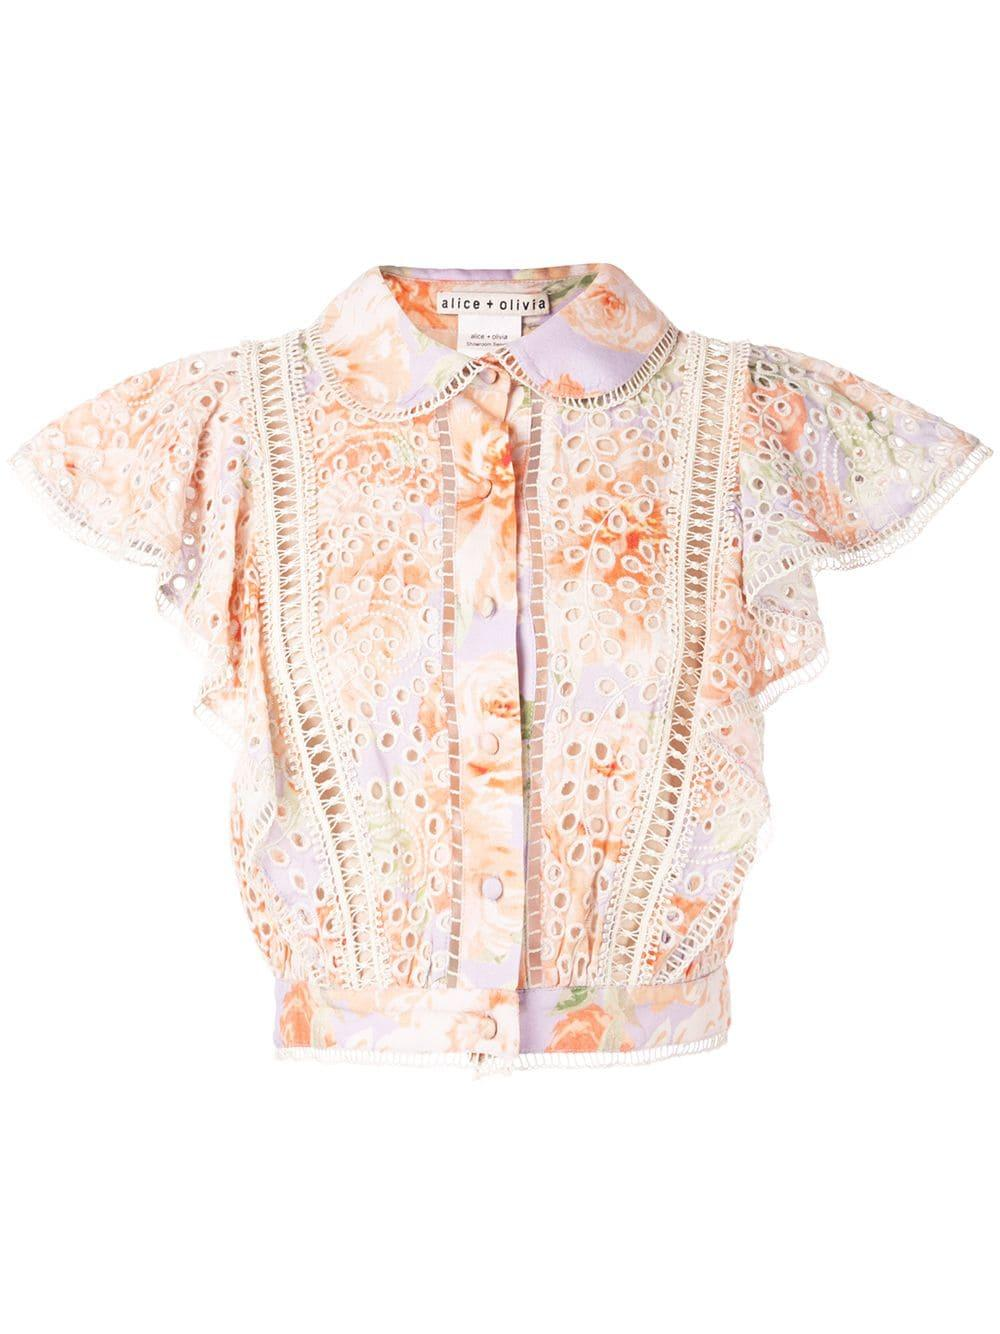 Caven Embroidered Eyelet Blouse Item # CC904D33001